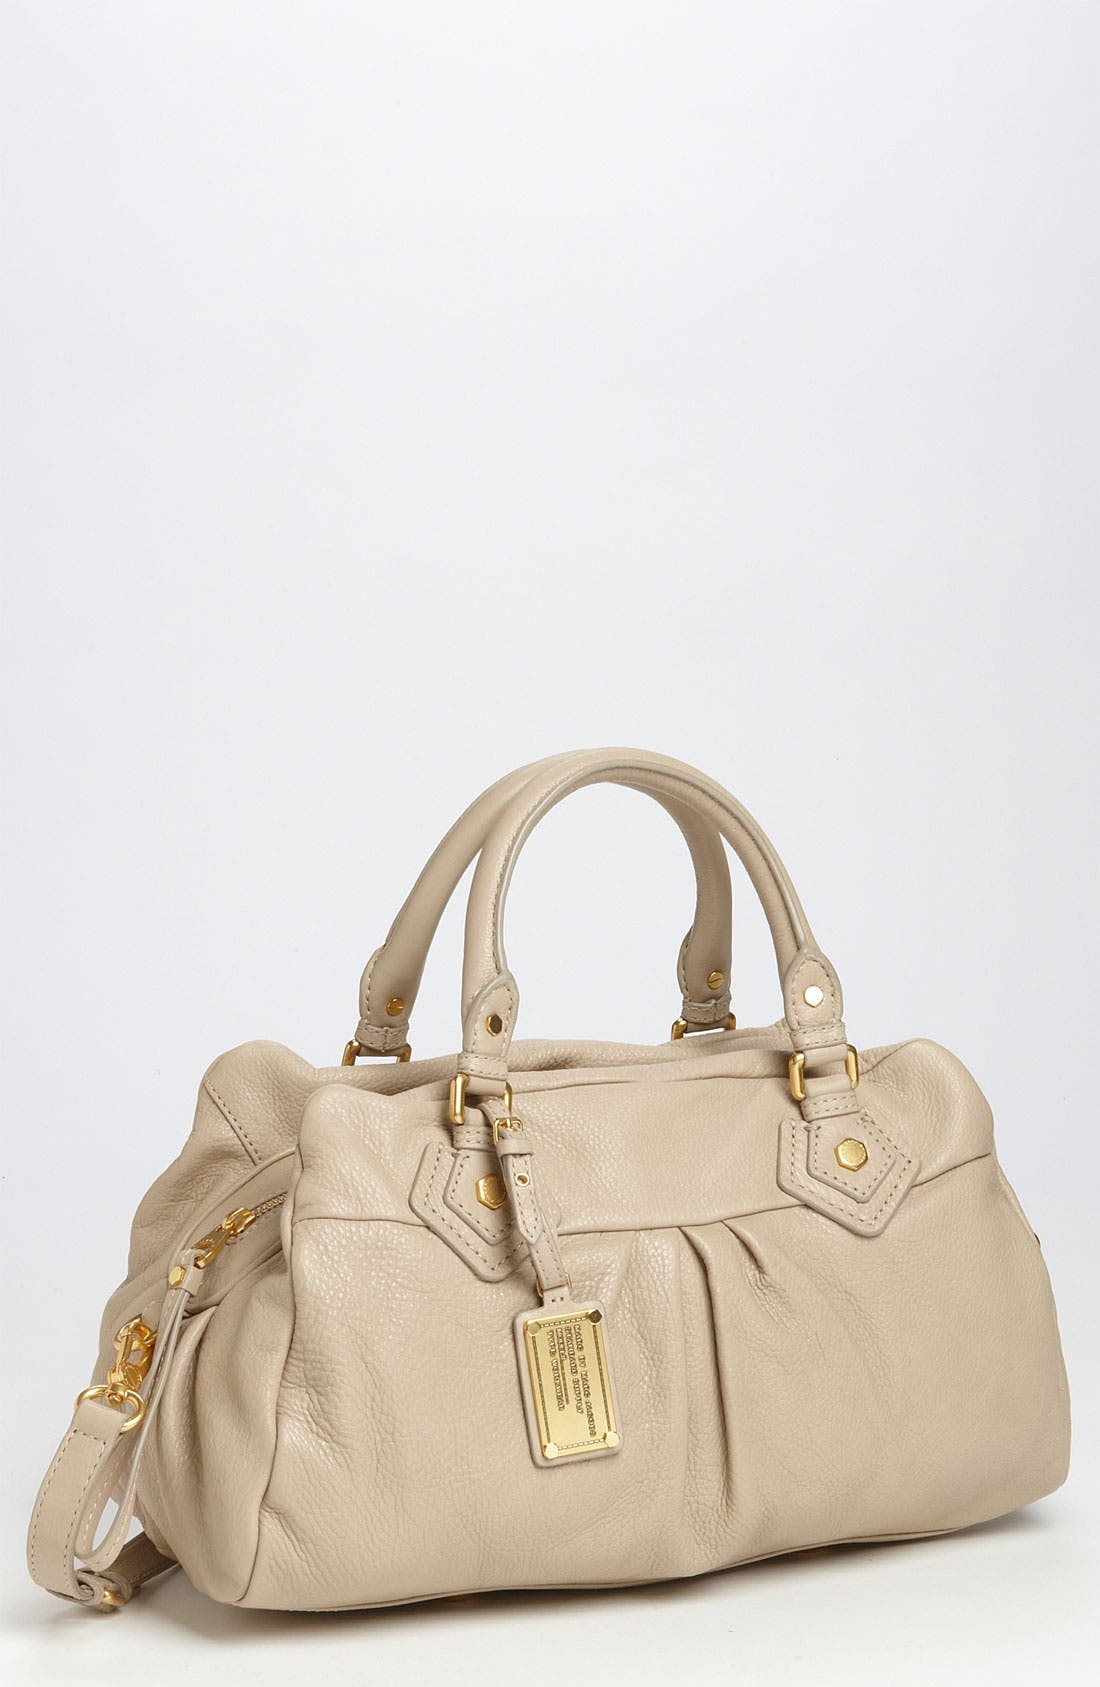 MARC BY MARC JACOBS 'Classic Q - Groovee' Satchel,                             Main thumbnail 1, color,                             Creme